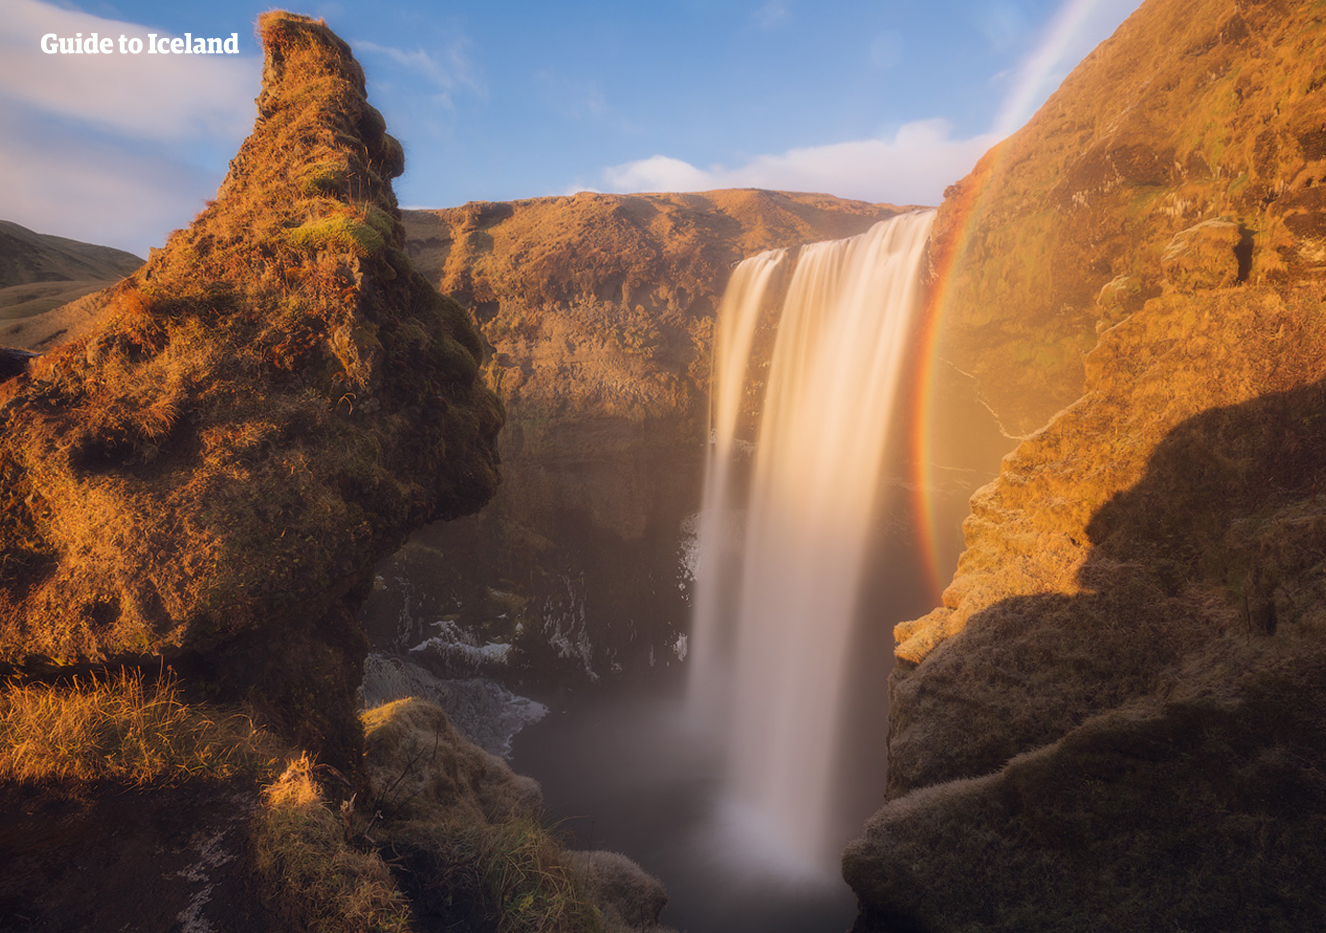 Skogafoss has a staircase by it that allows guests to admire it from different angles.